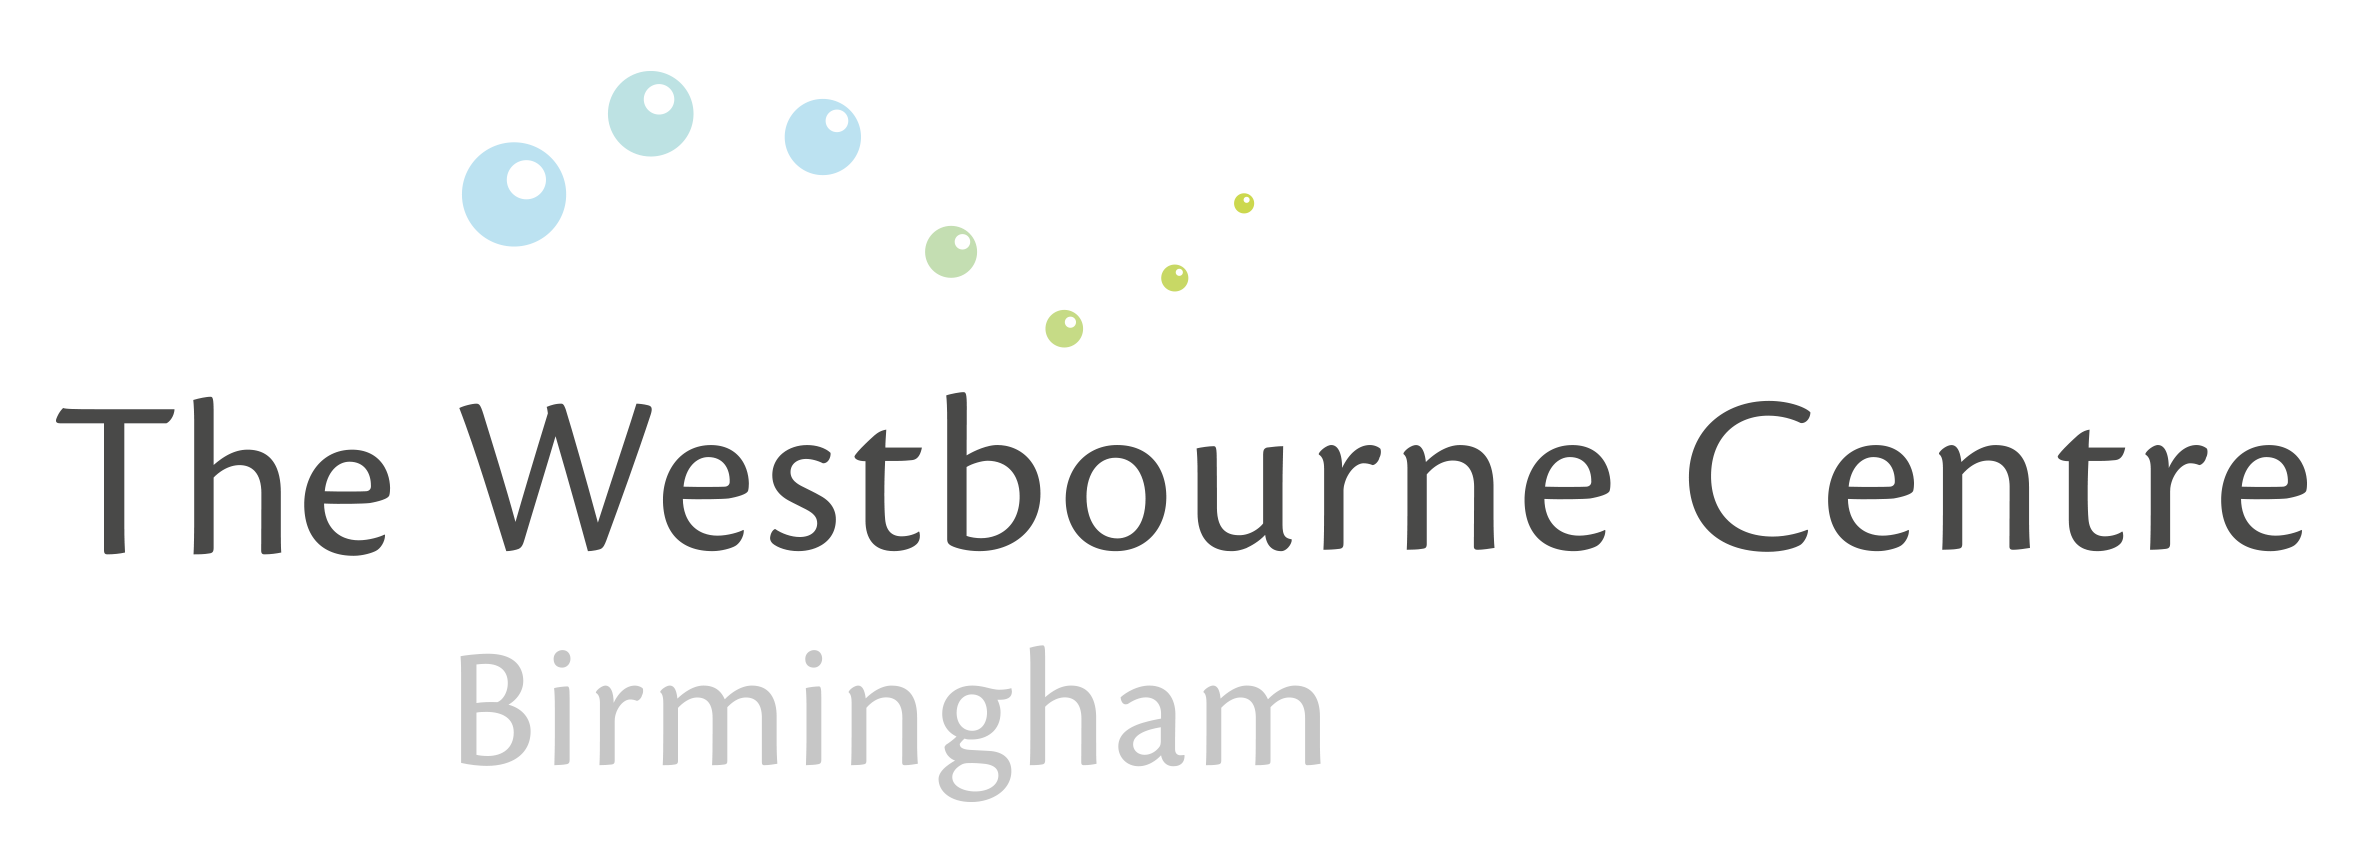 Read The Westbourne Centre Reviews